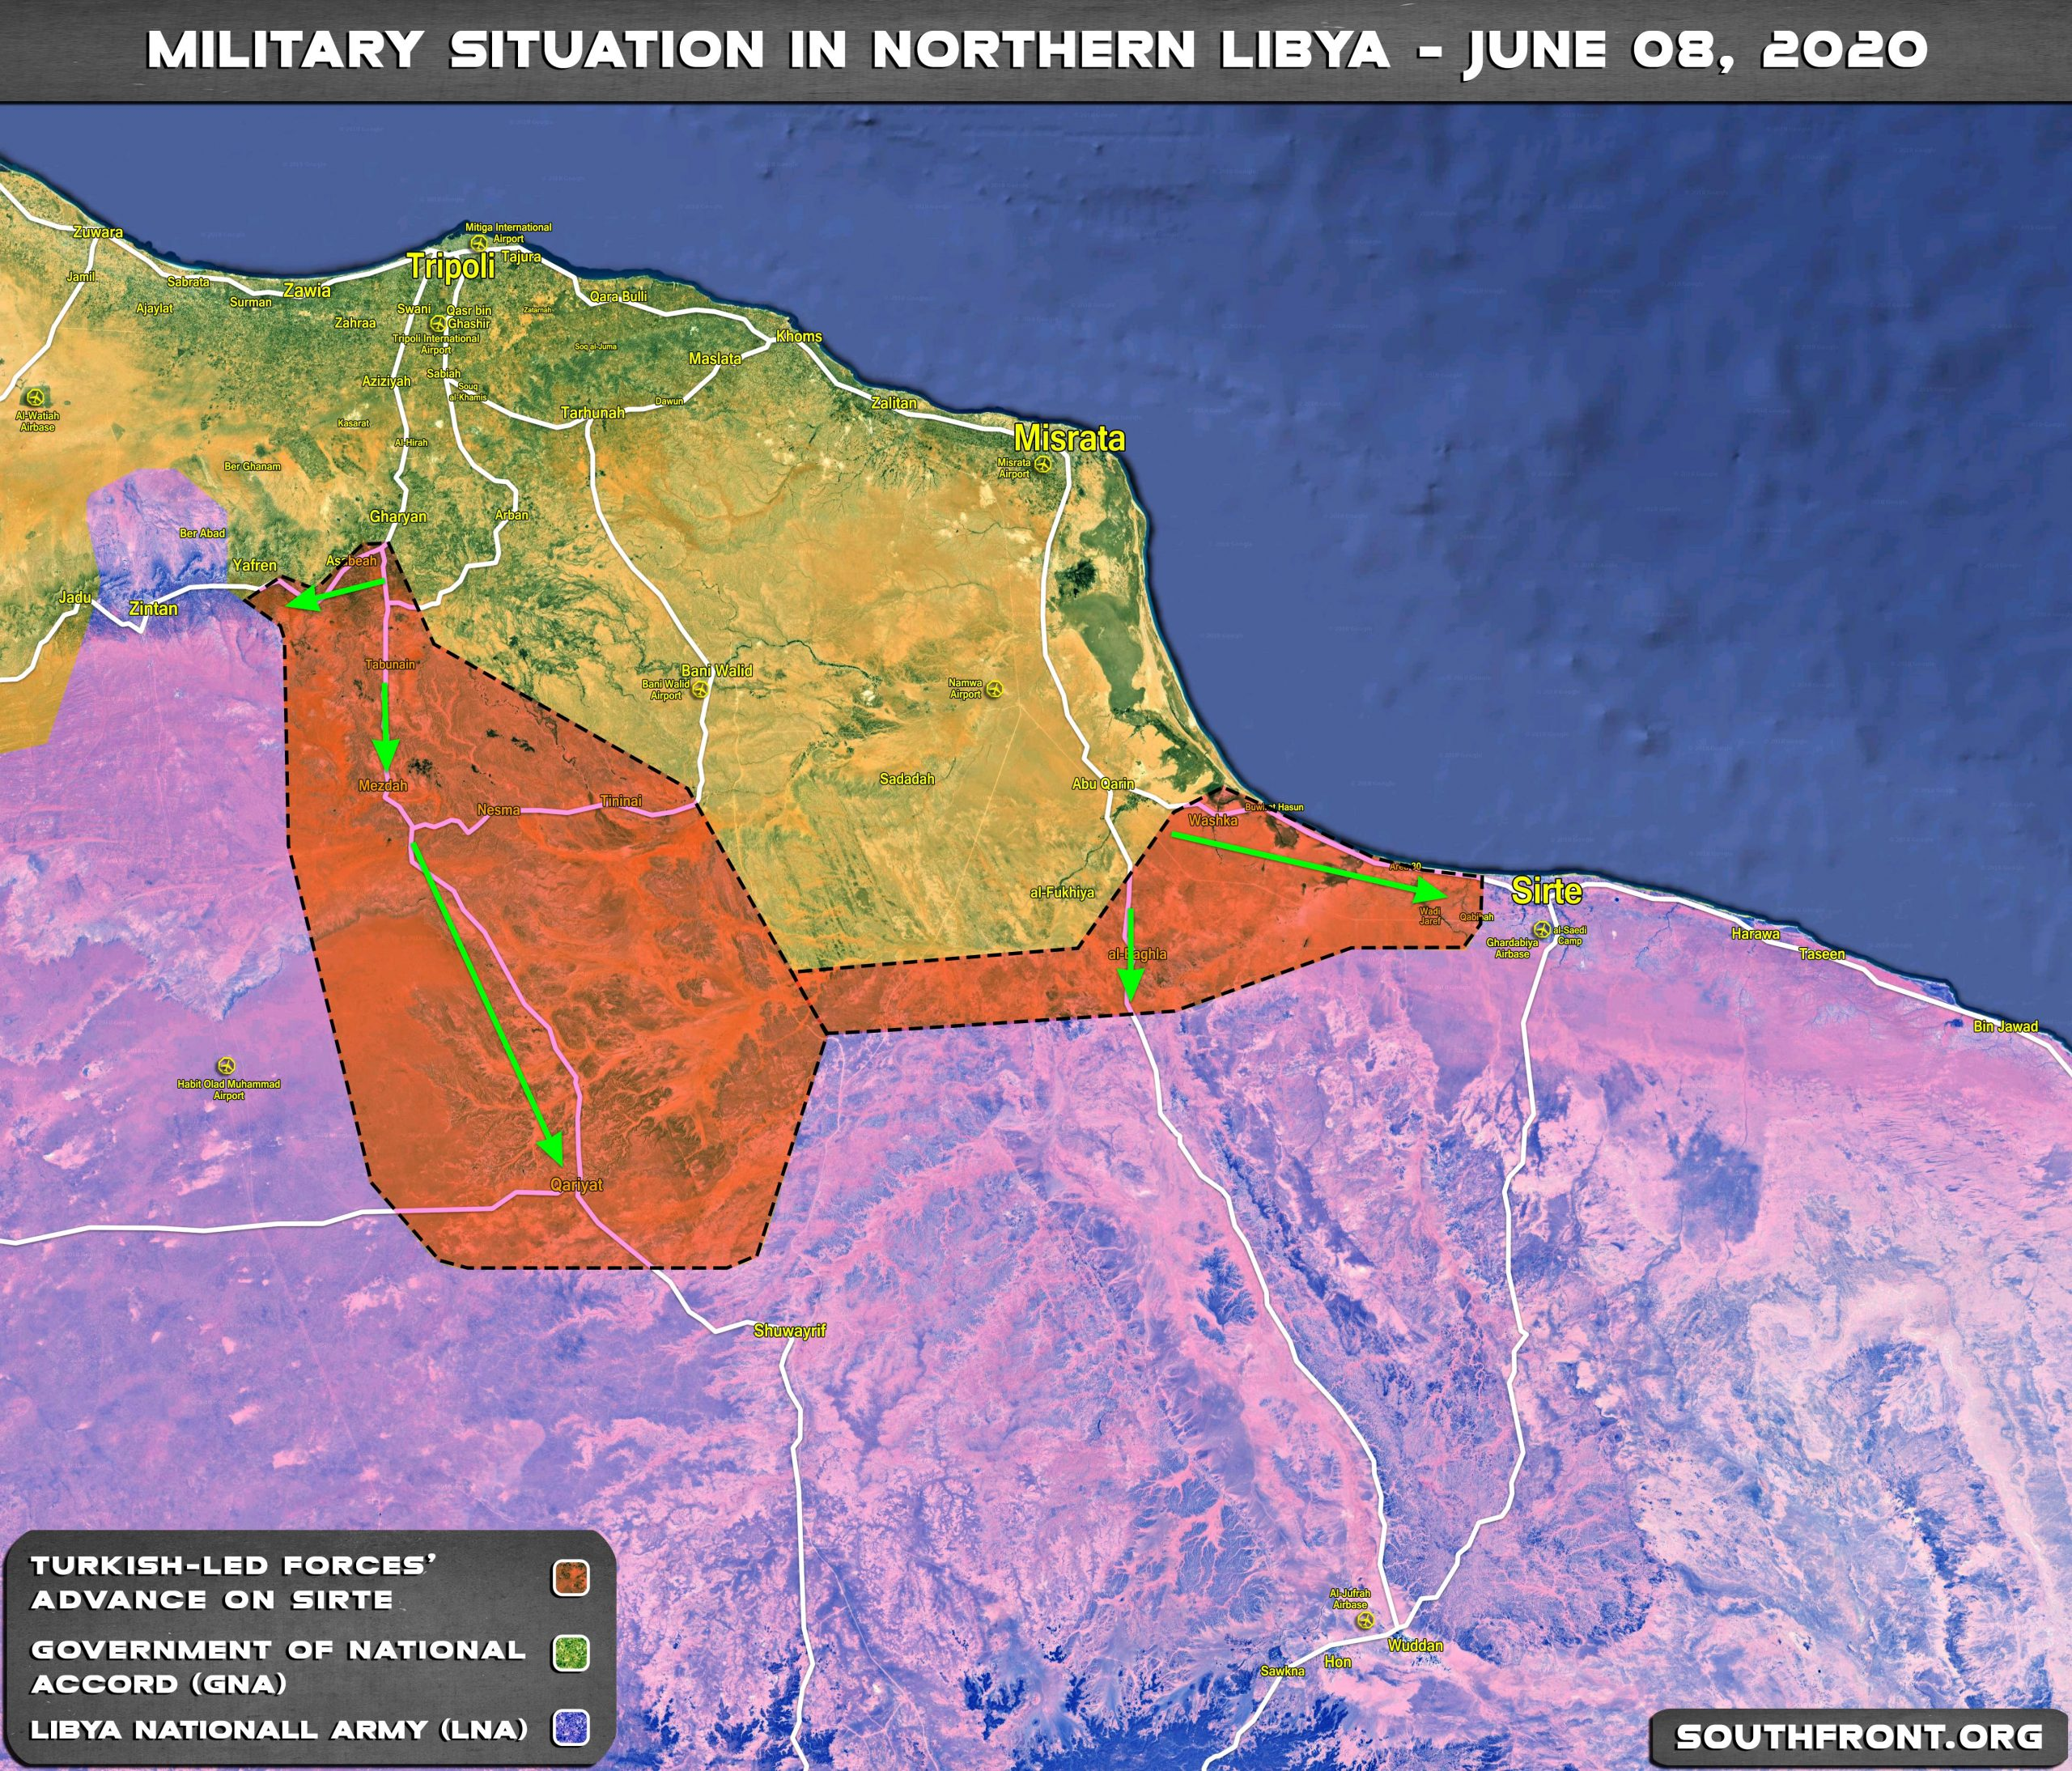 Diplomatic Push For Ceasefire, As Turkey And GNA Prepare Push On Sirte